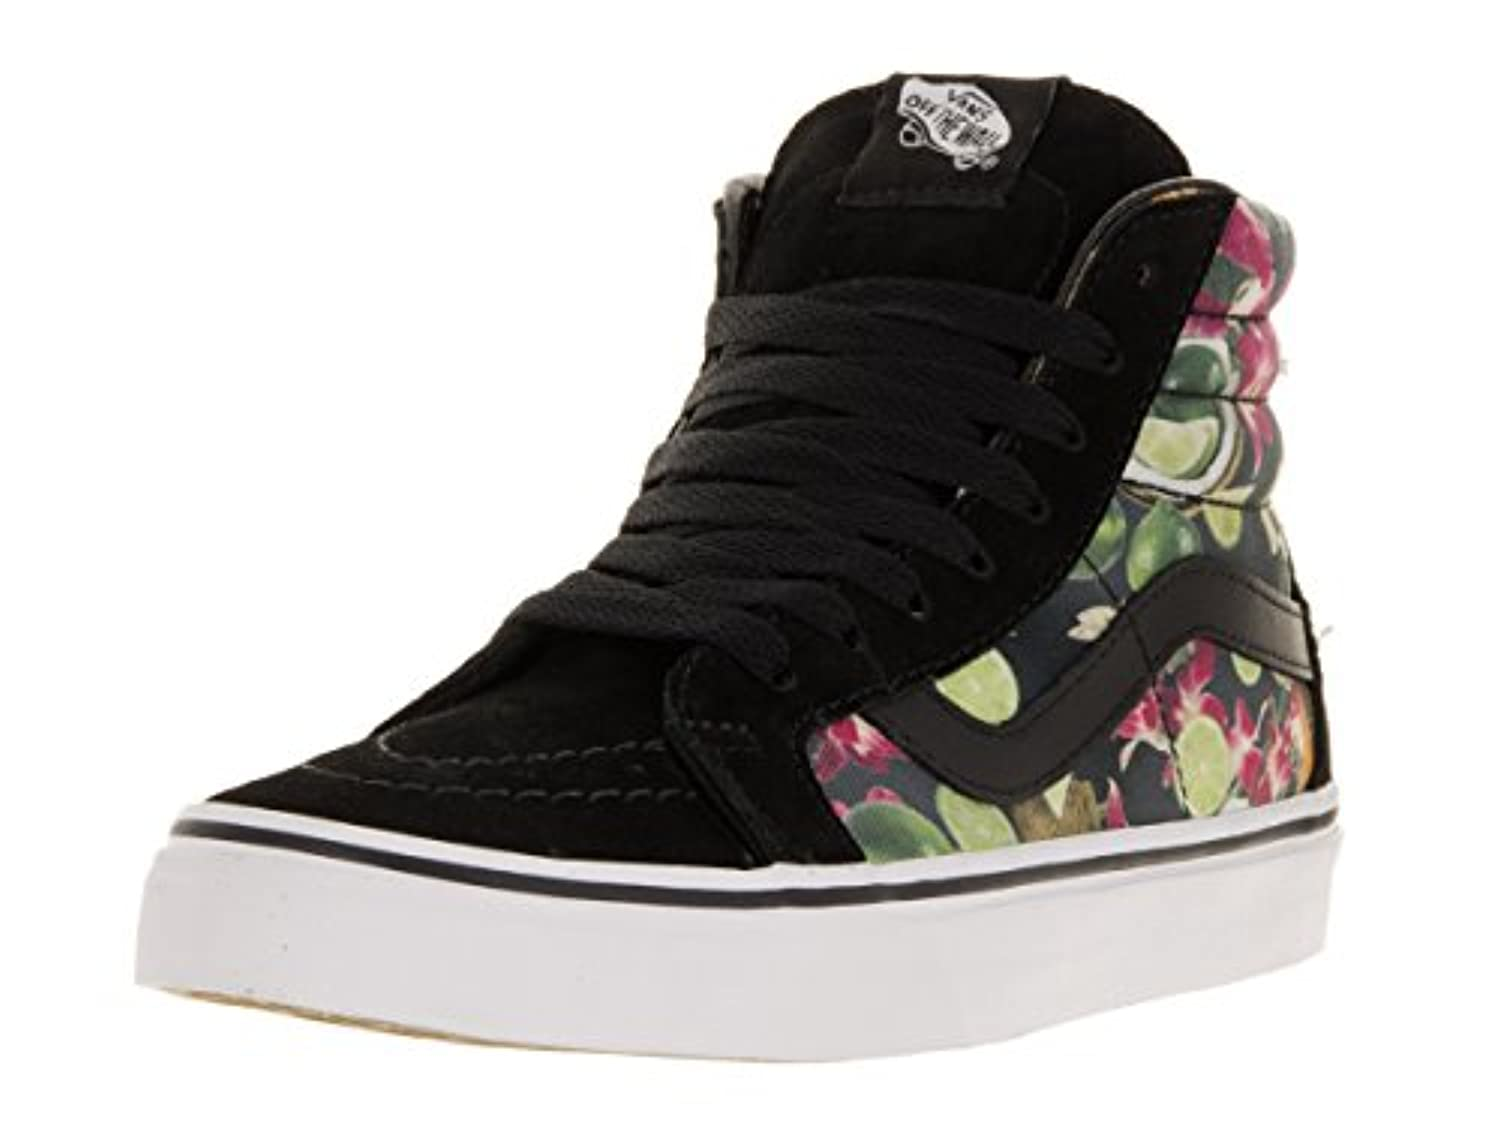 Vans Unisex Adults' SK8 Reissue Hi-Top Sneakers, Blue (Wool and Leather Parisian Night/Tortoise Shell), 3 UK